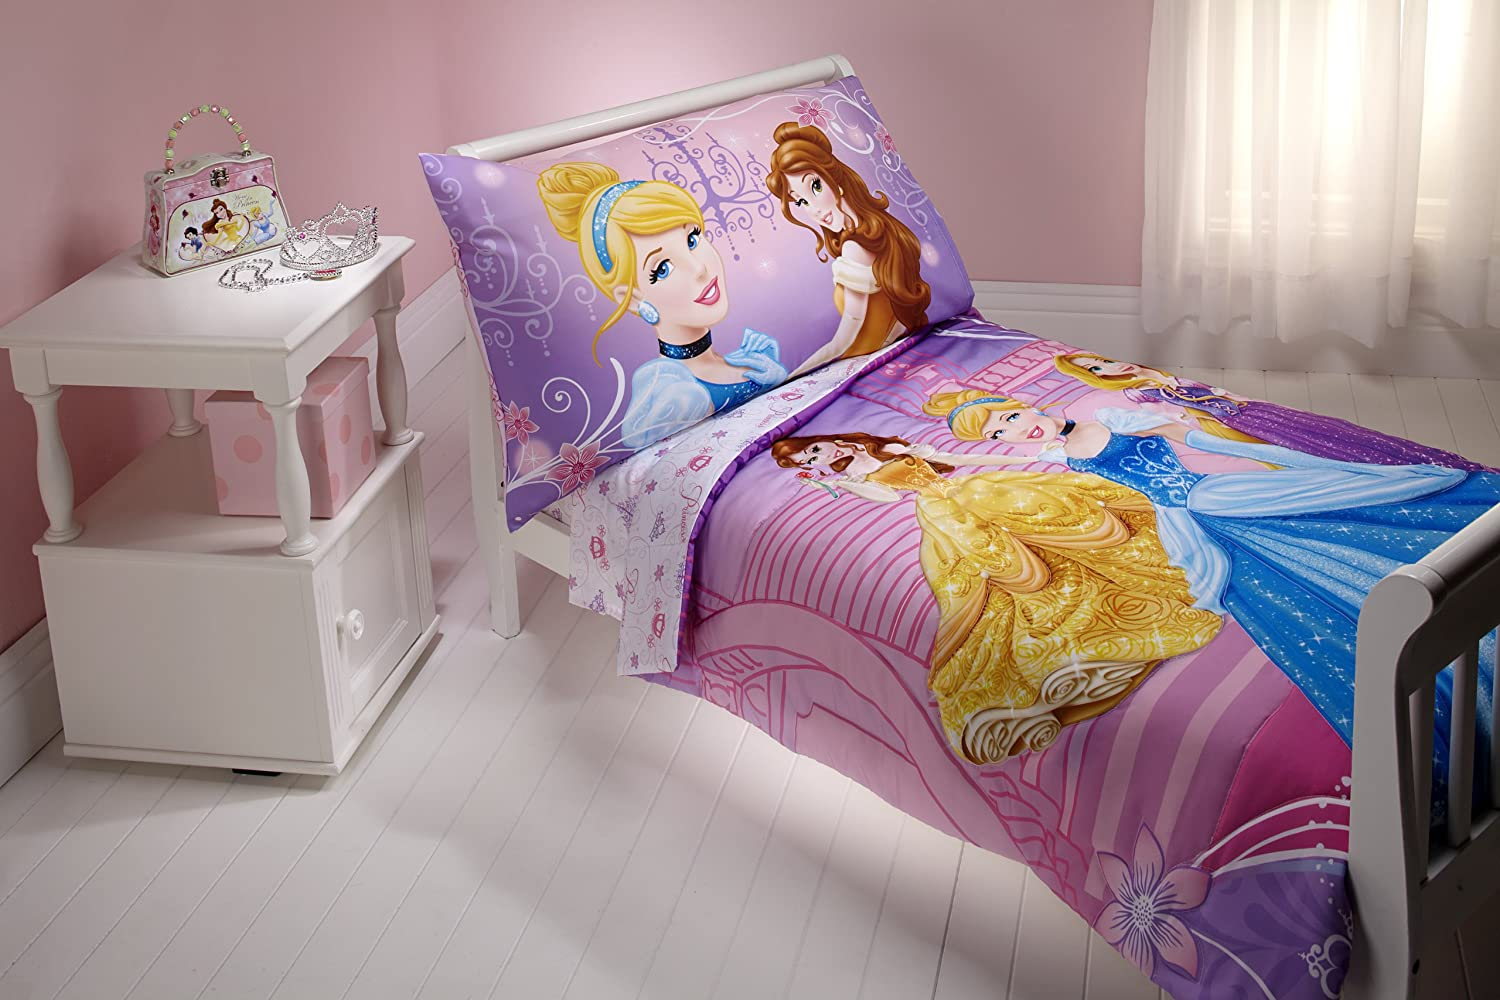 BnM Disney Princess 4 piece toddler bed set-shining dresses at Sears.com